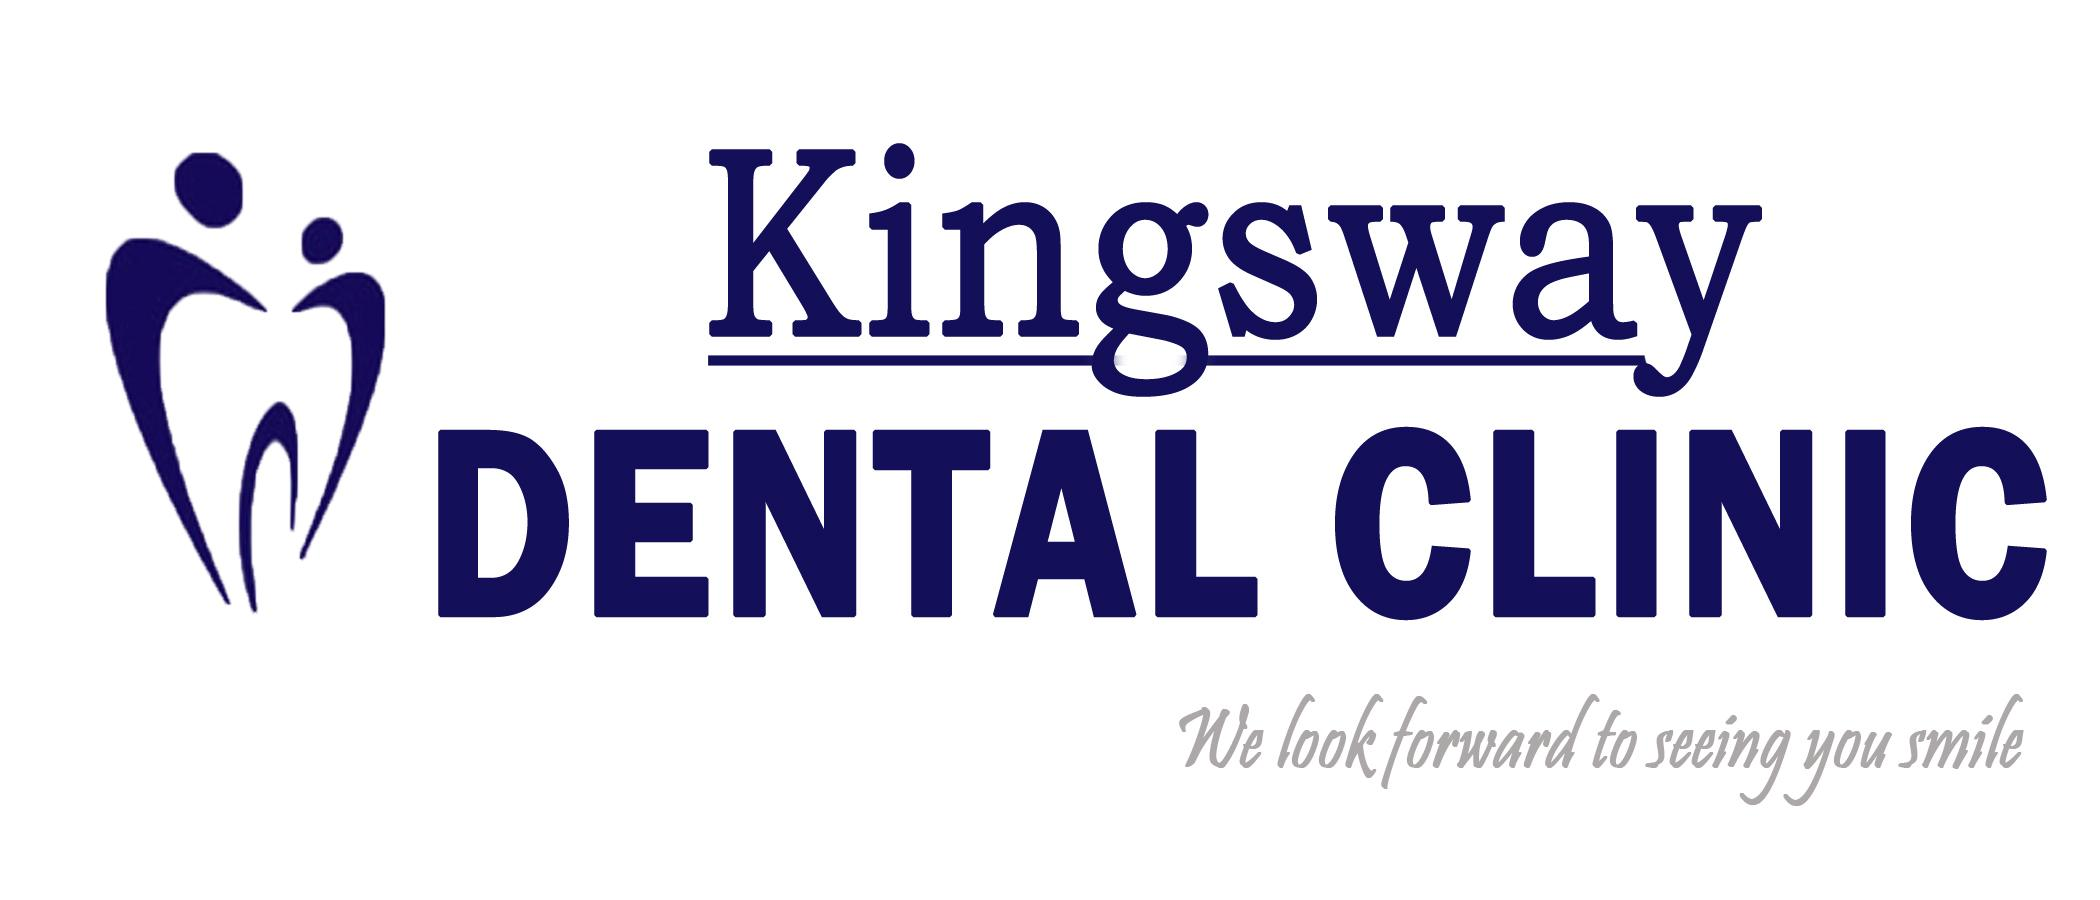 Kingsway Dental Clinic